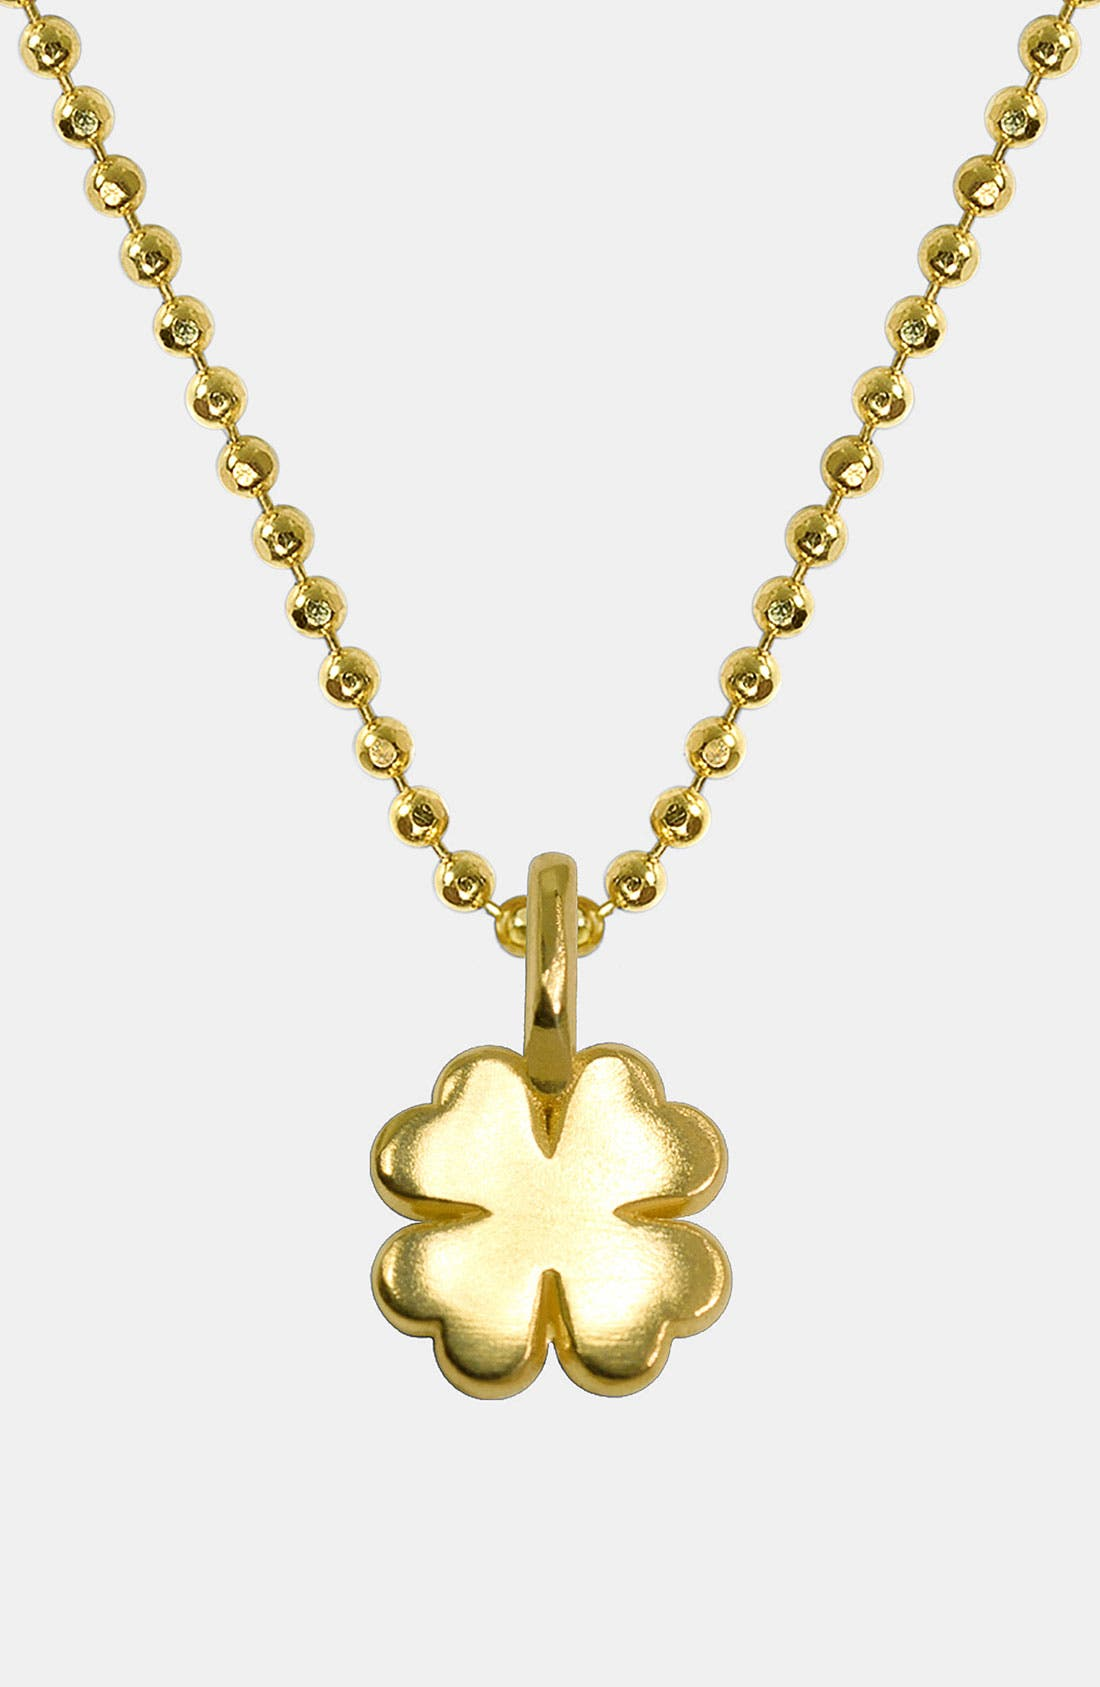 Main Image - Alex Woo 'Mini Clover' 14k Gold Pendant Necklace